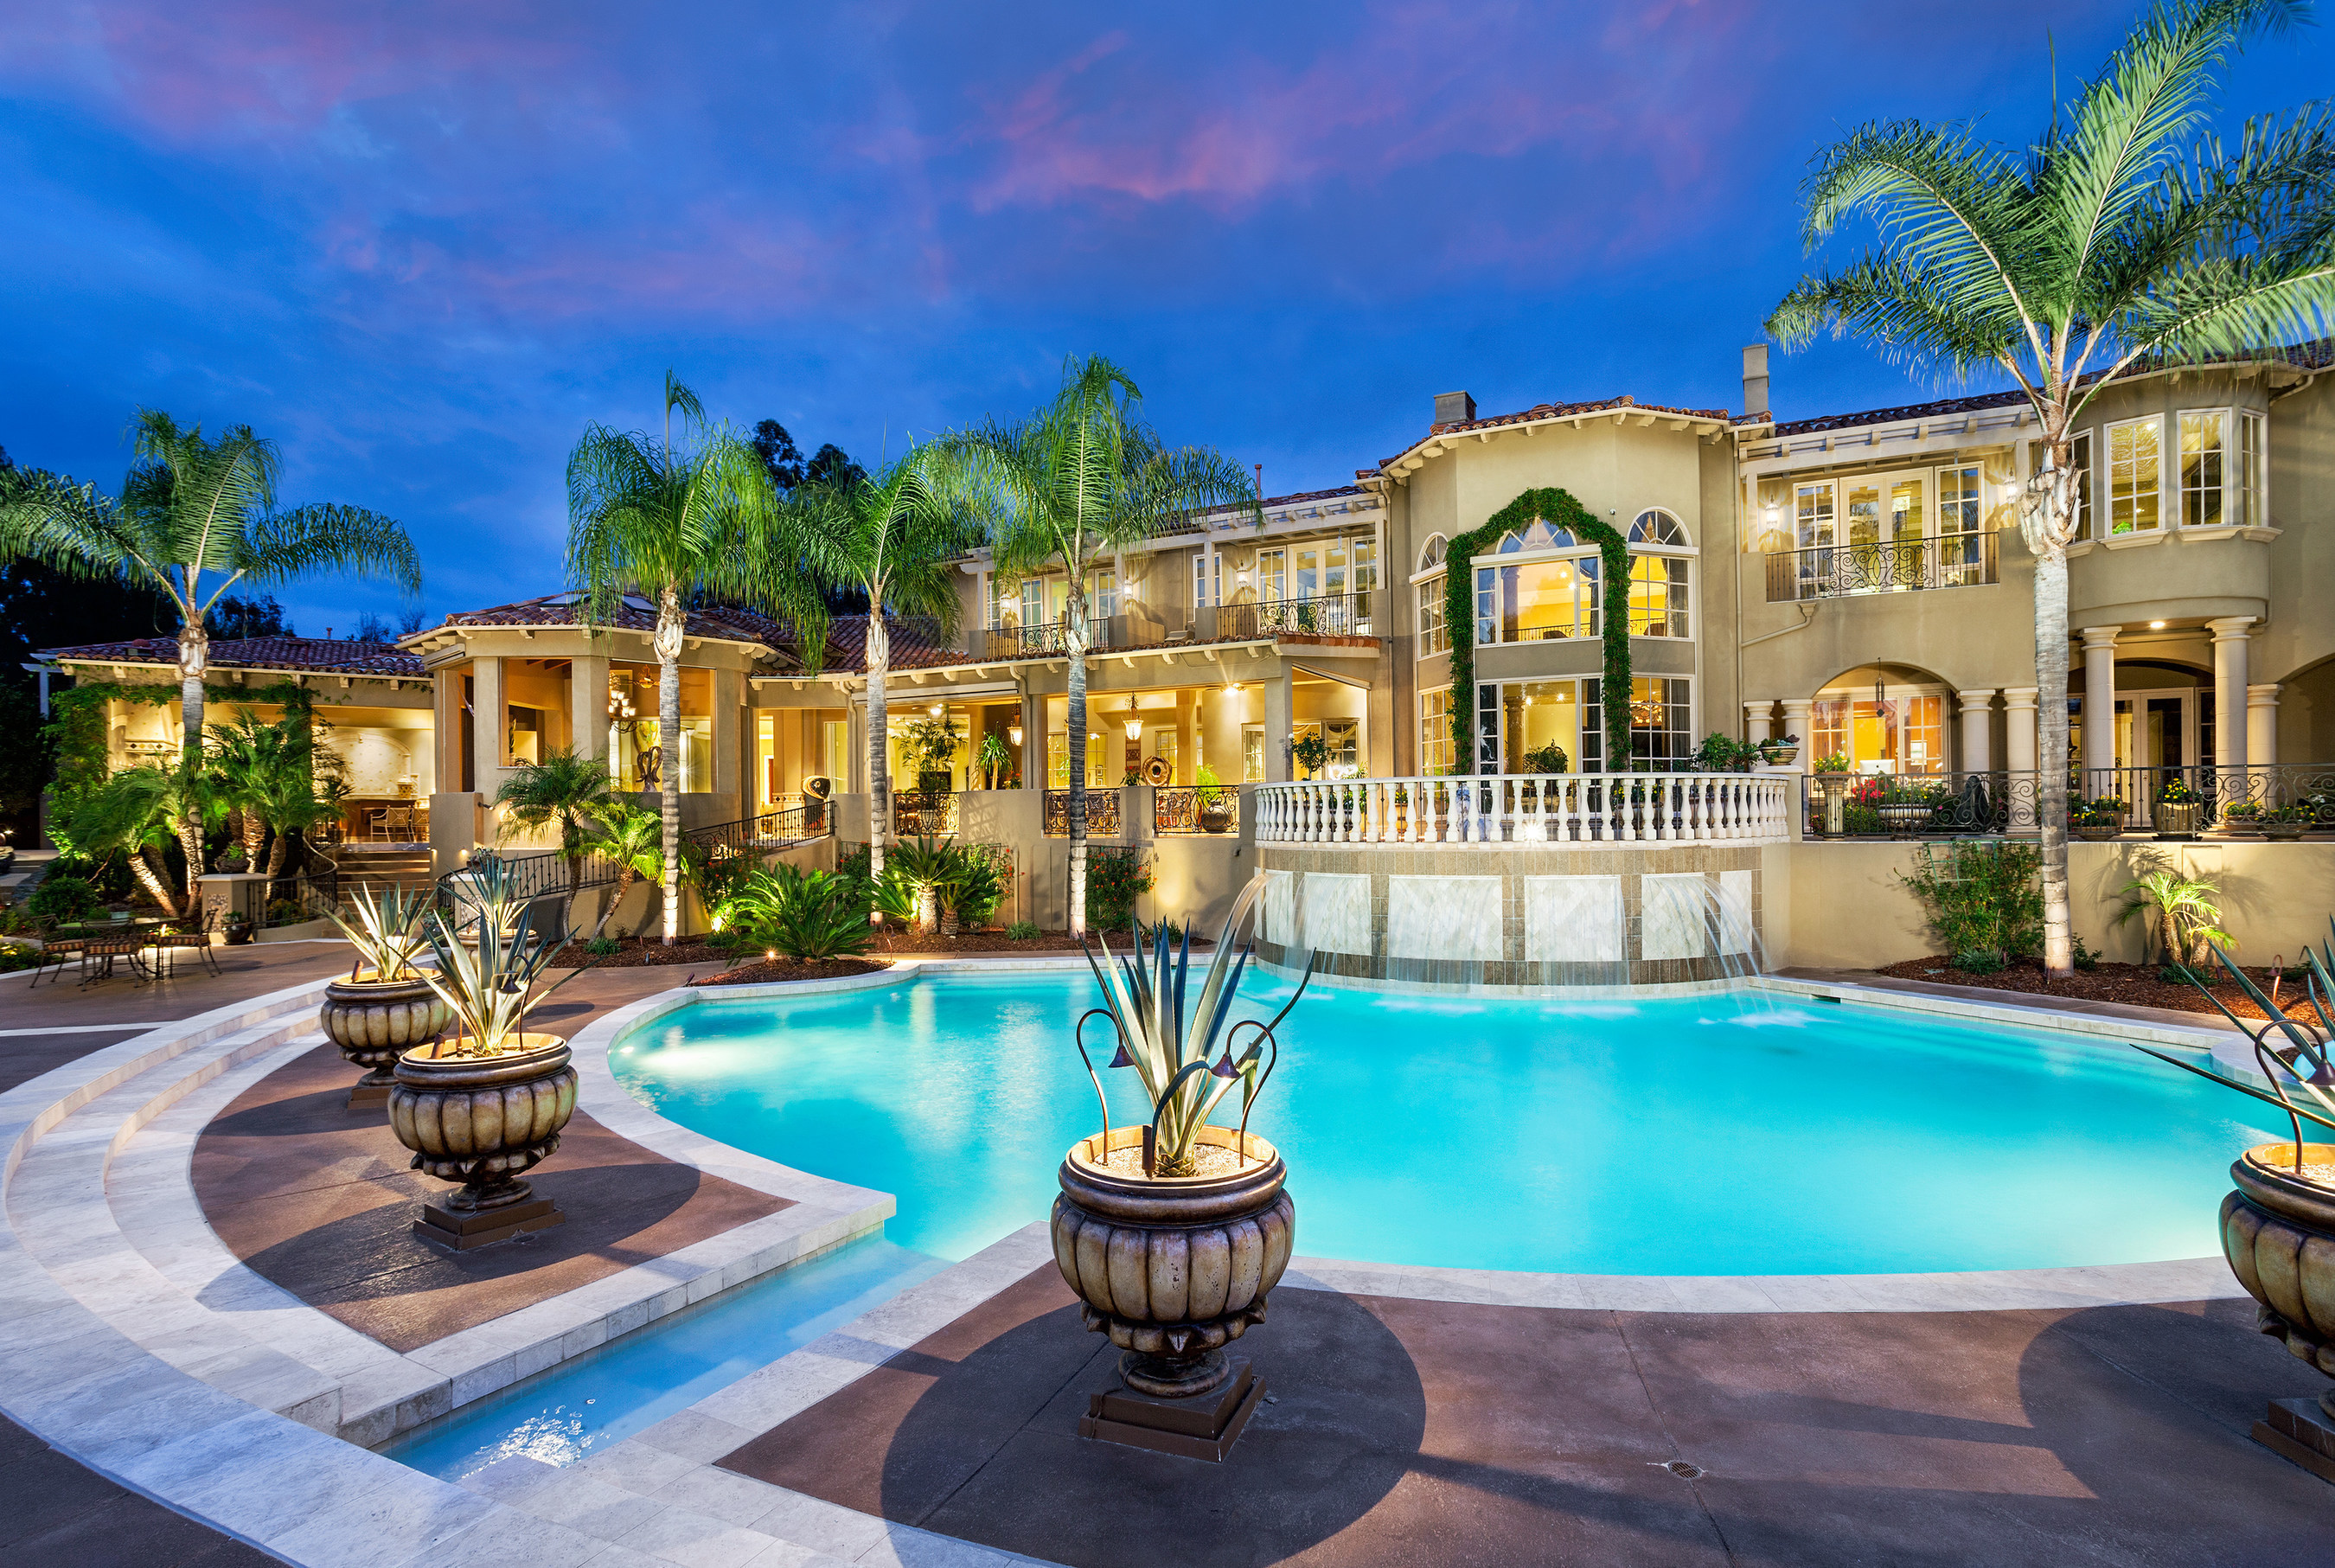 Platinum Luxury Auctions Launches Auction within Exclusive Rancho Santa Fe Community